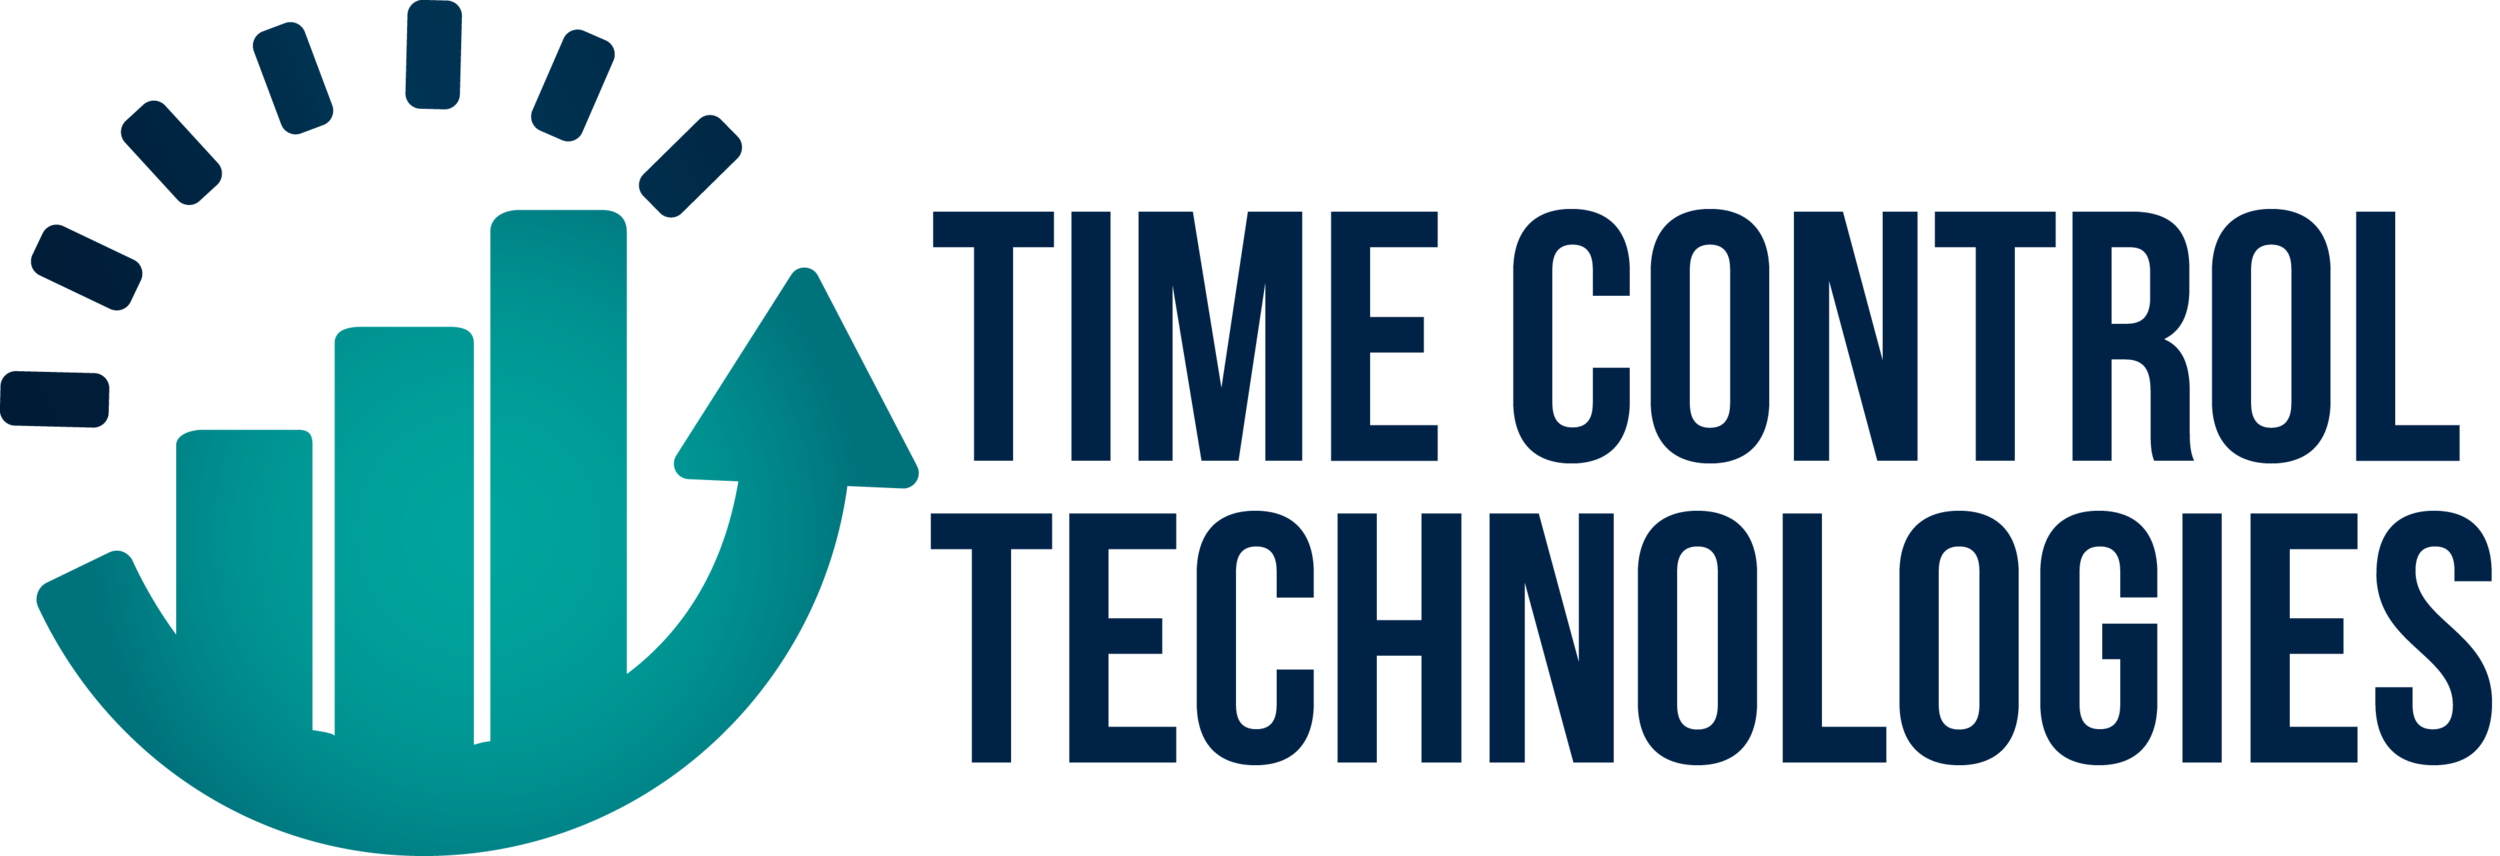 Timecontrol (1).png